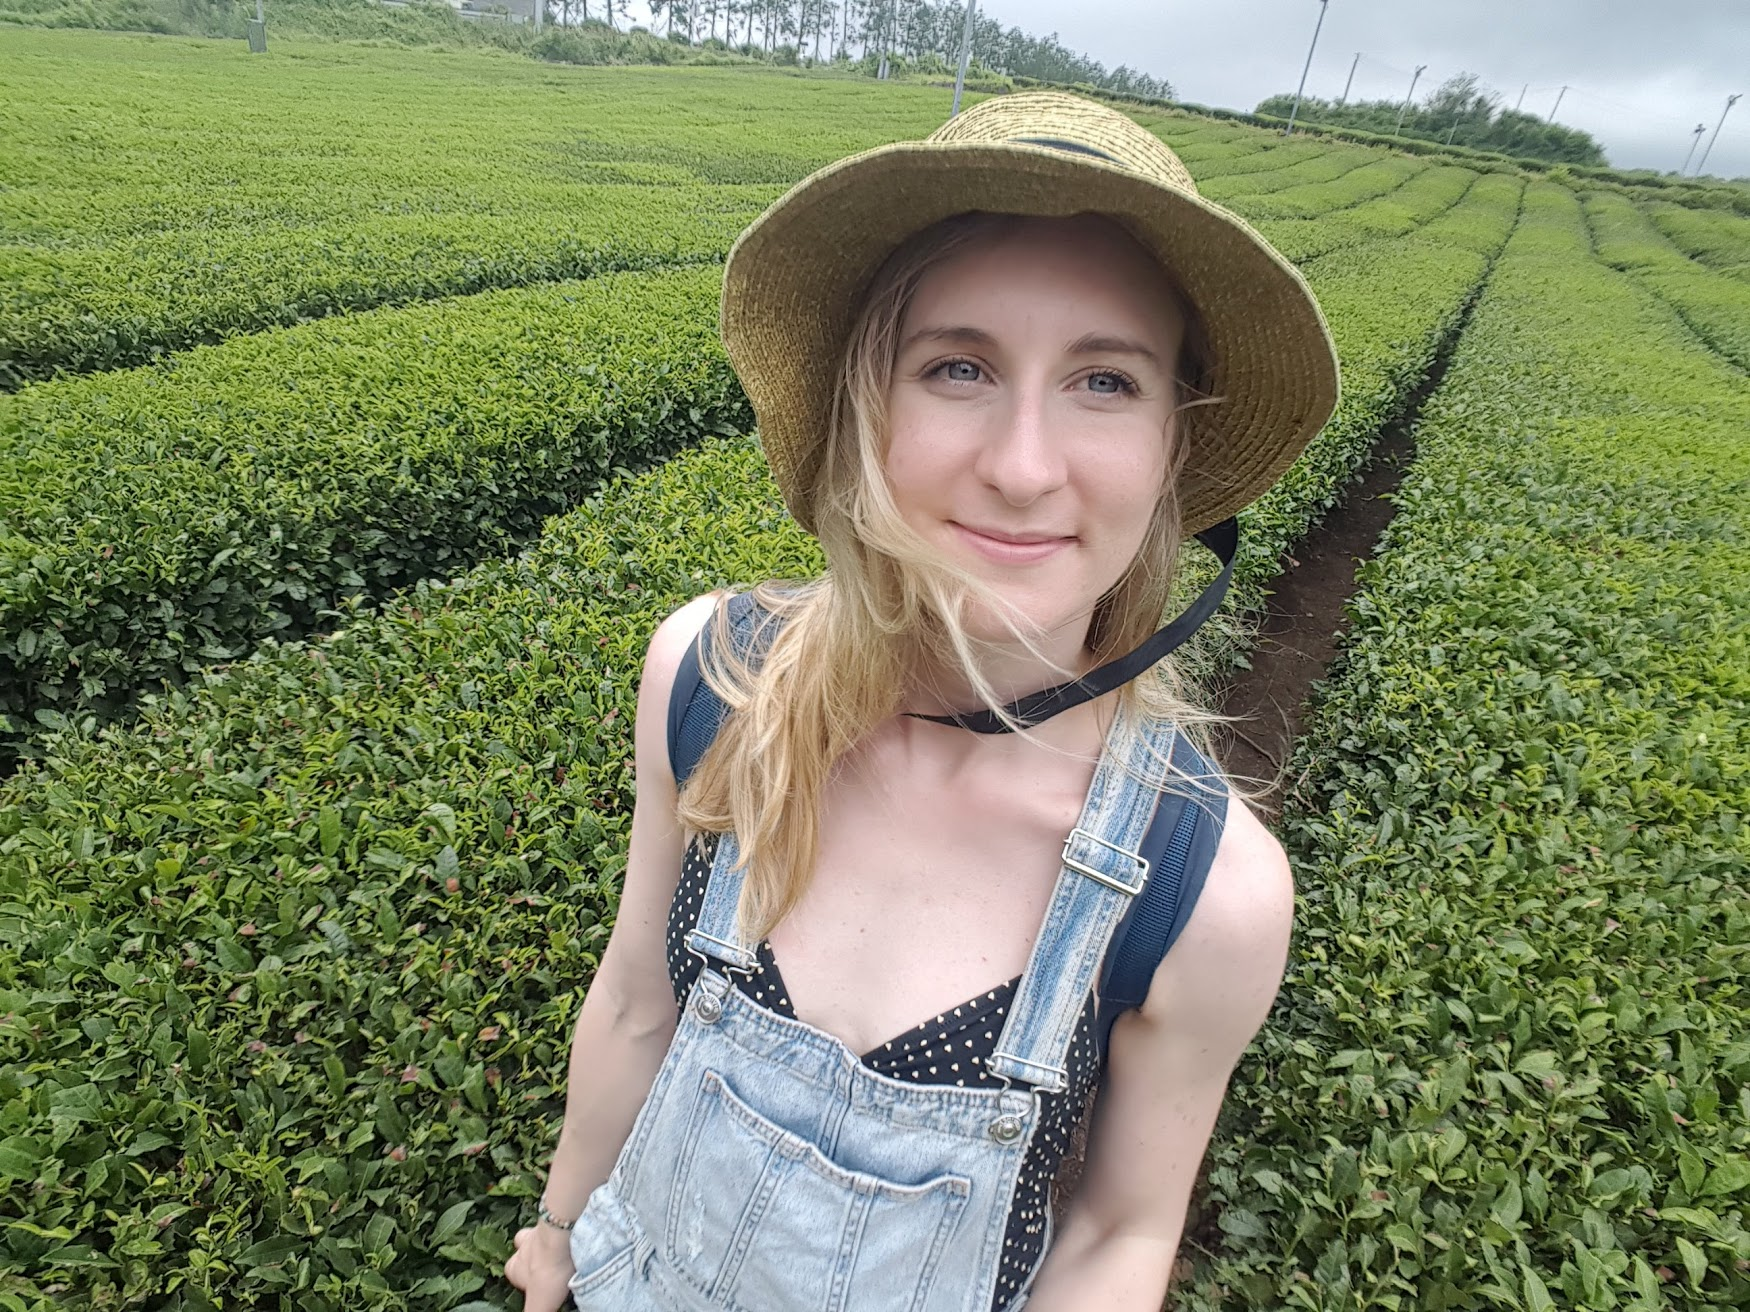 Hanging out in the Innis Free Green Tea Fields.